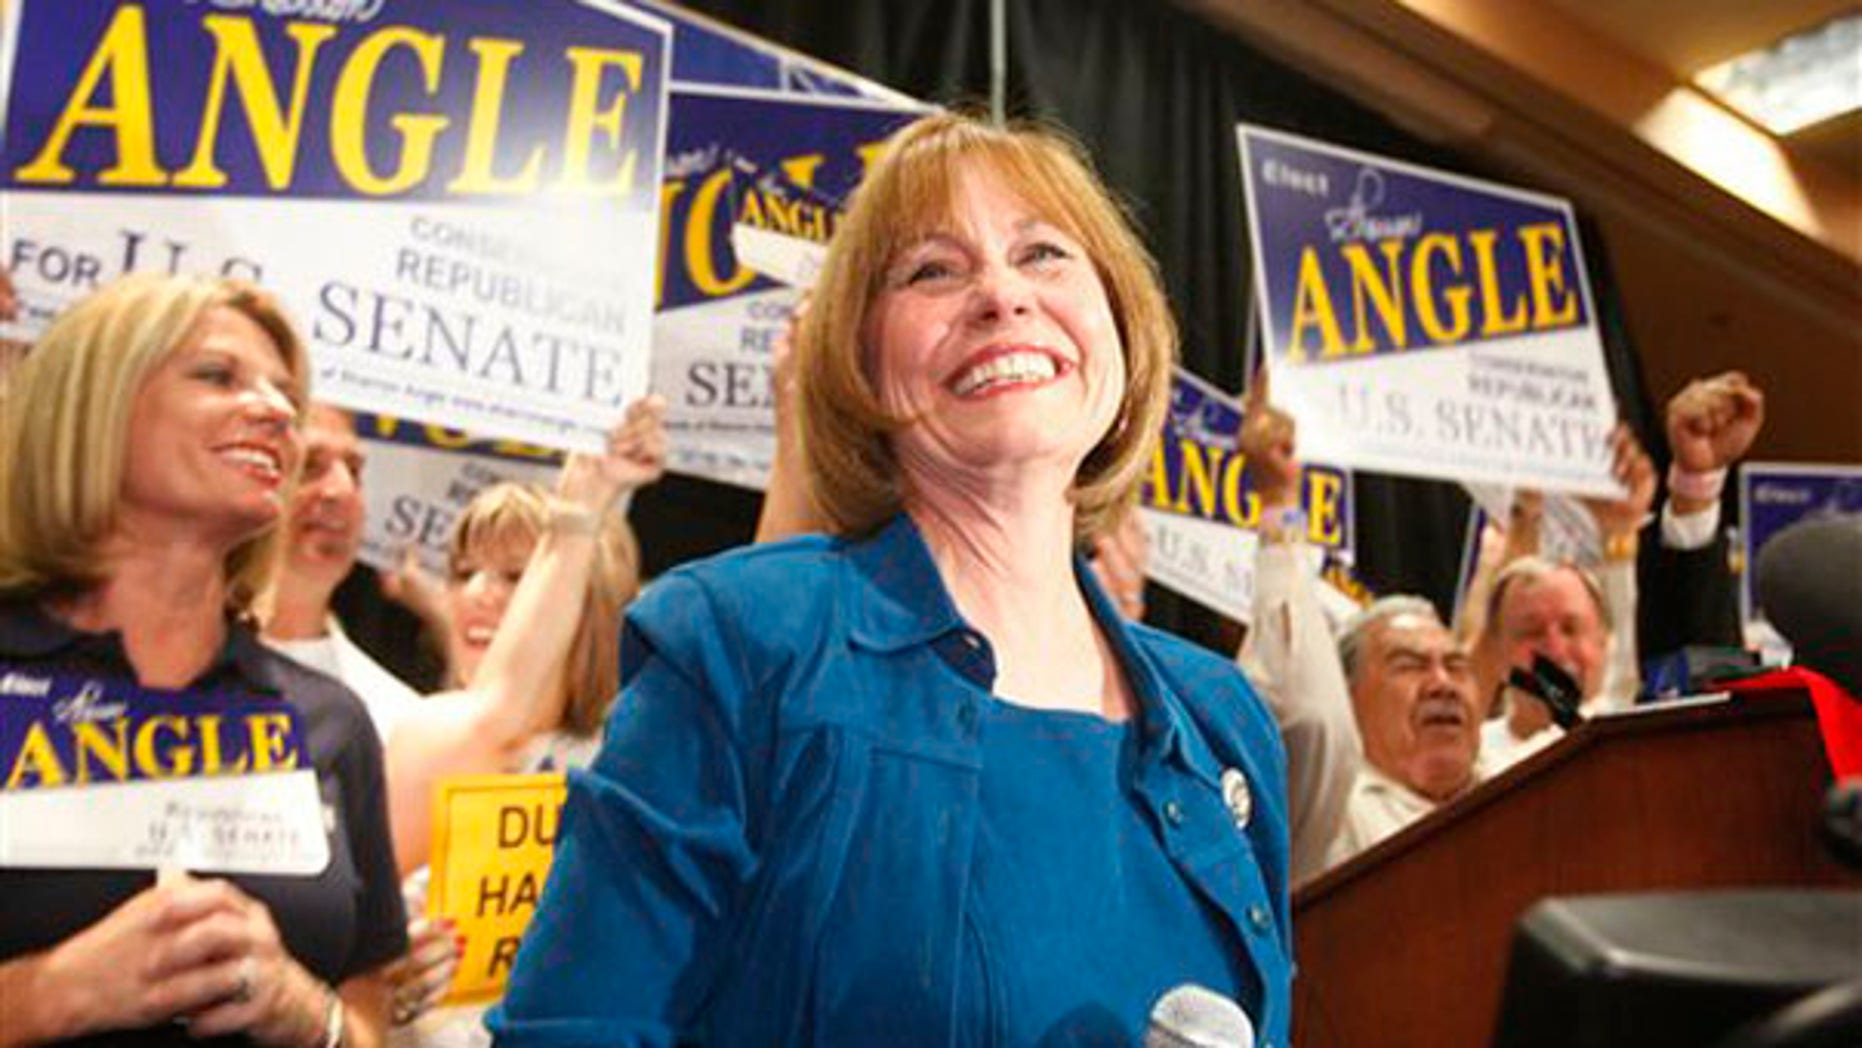 Sharron Angle speaks to supporters after winning the Nevada Republican Senate primary June 8 in Las Vegas. (AP Photo)